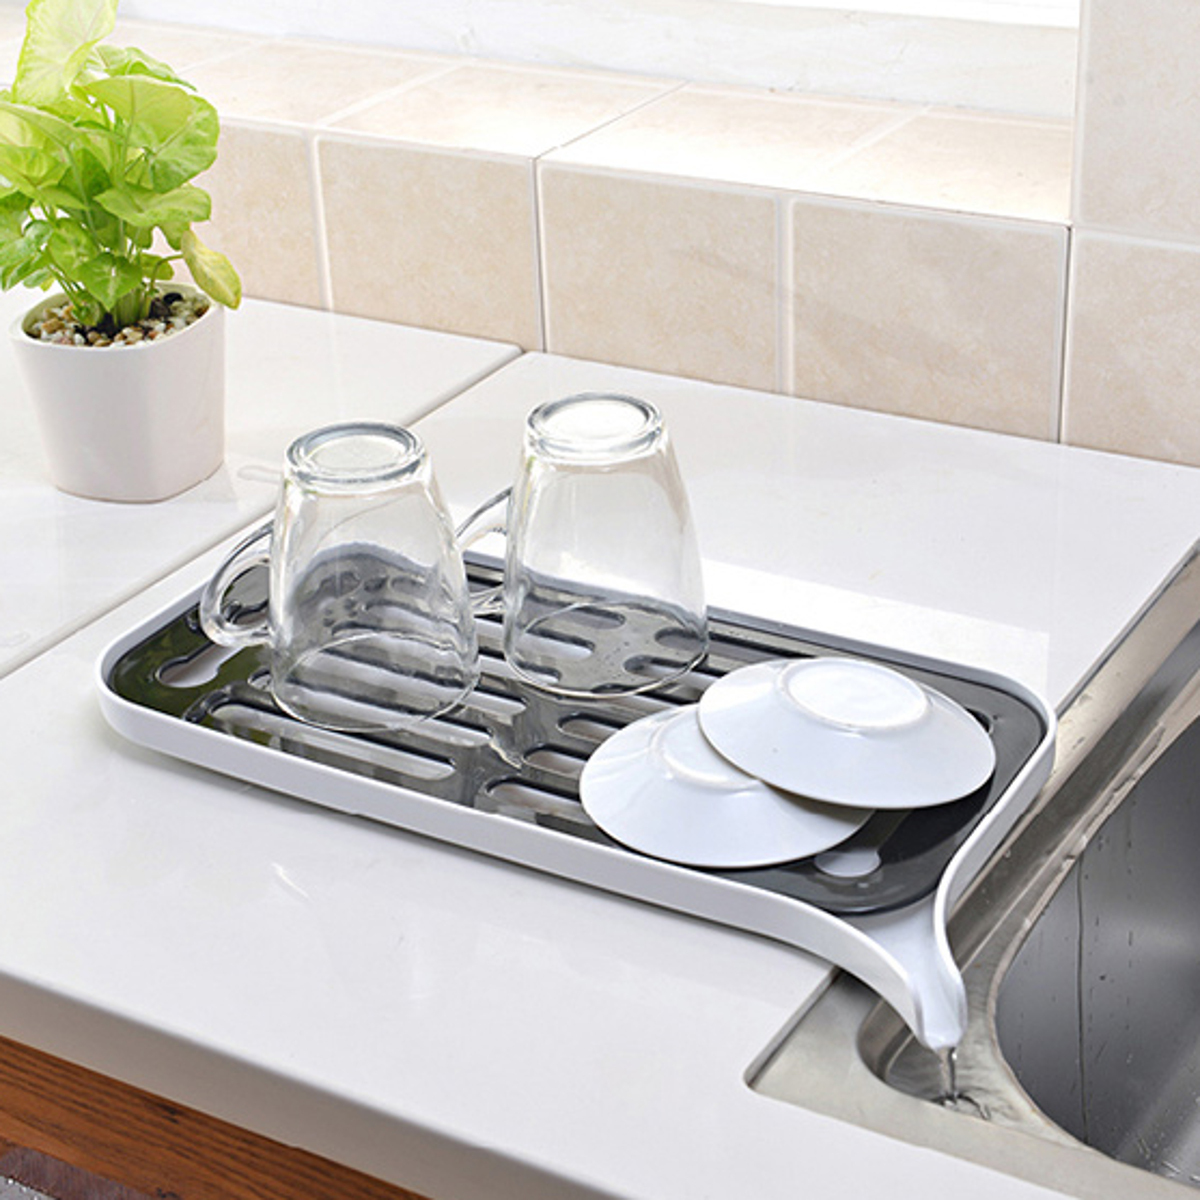 Kitchen Dish Drainer Drip Tray Rack Board Sink Drying Holder Washing Up Bowl Strainer